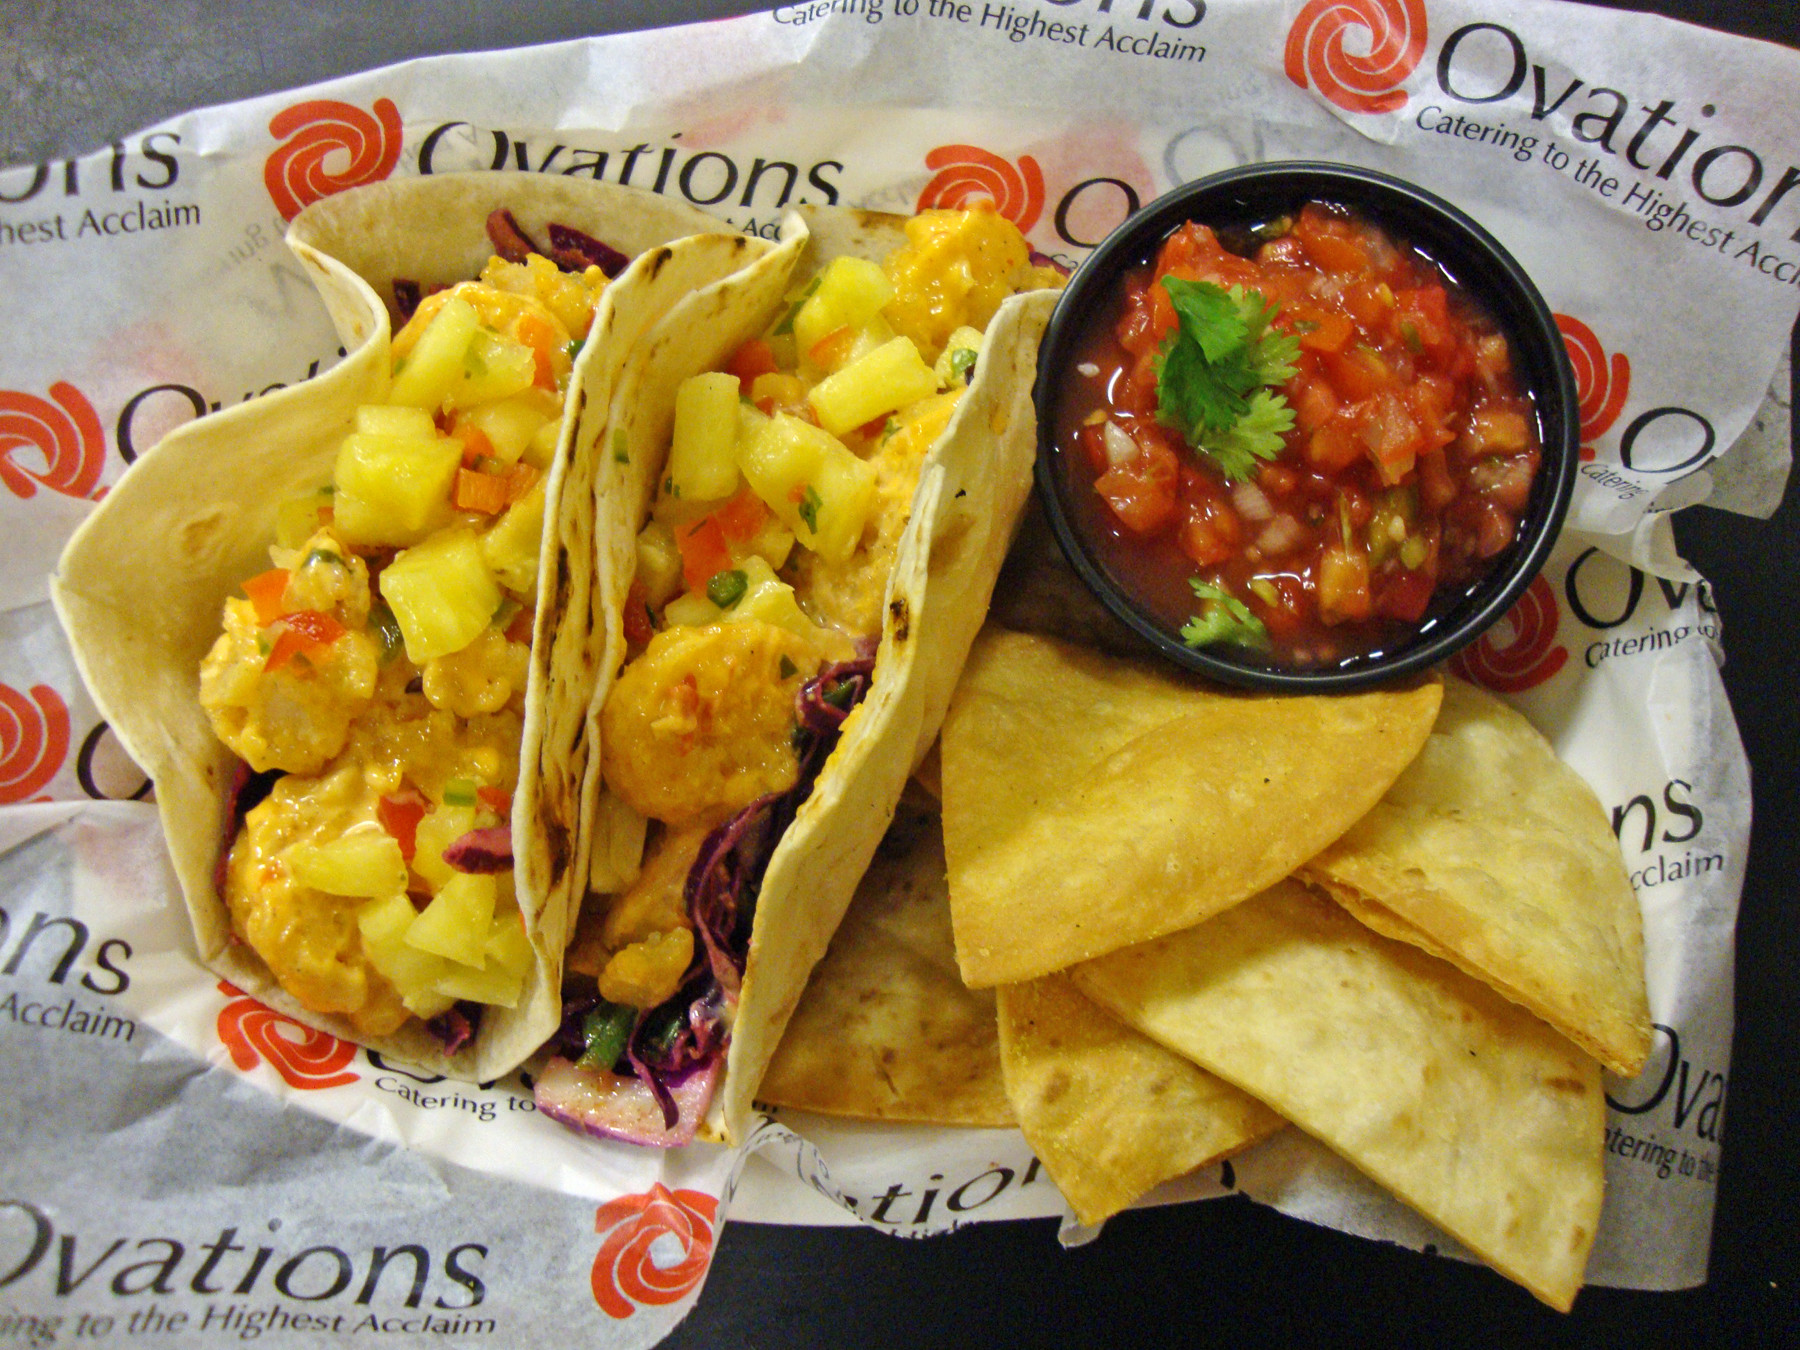 The Duval Taco Company's Big Bang Taco is loaded with spicy fried shrimp, chopped pineapple, diced red pepper and jalapeño and served on cabbage slaw marinated in a cumin-lime vinaigrette.